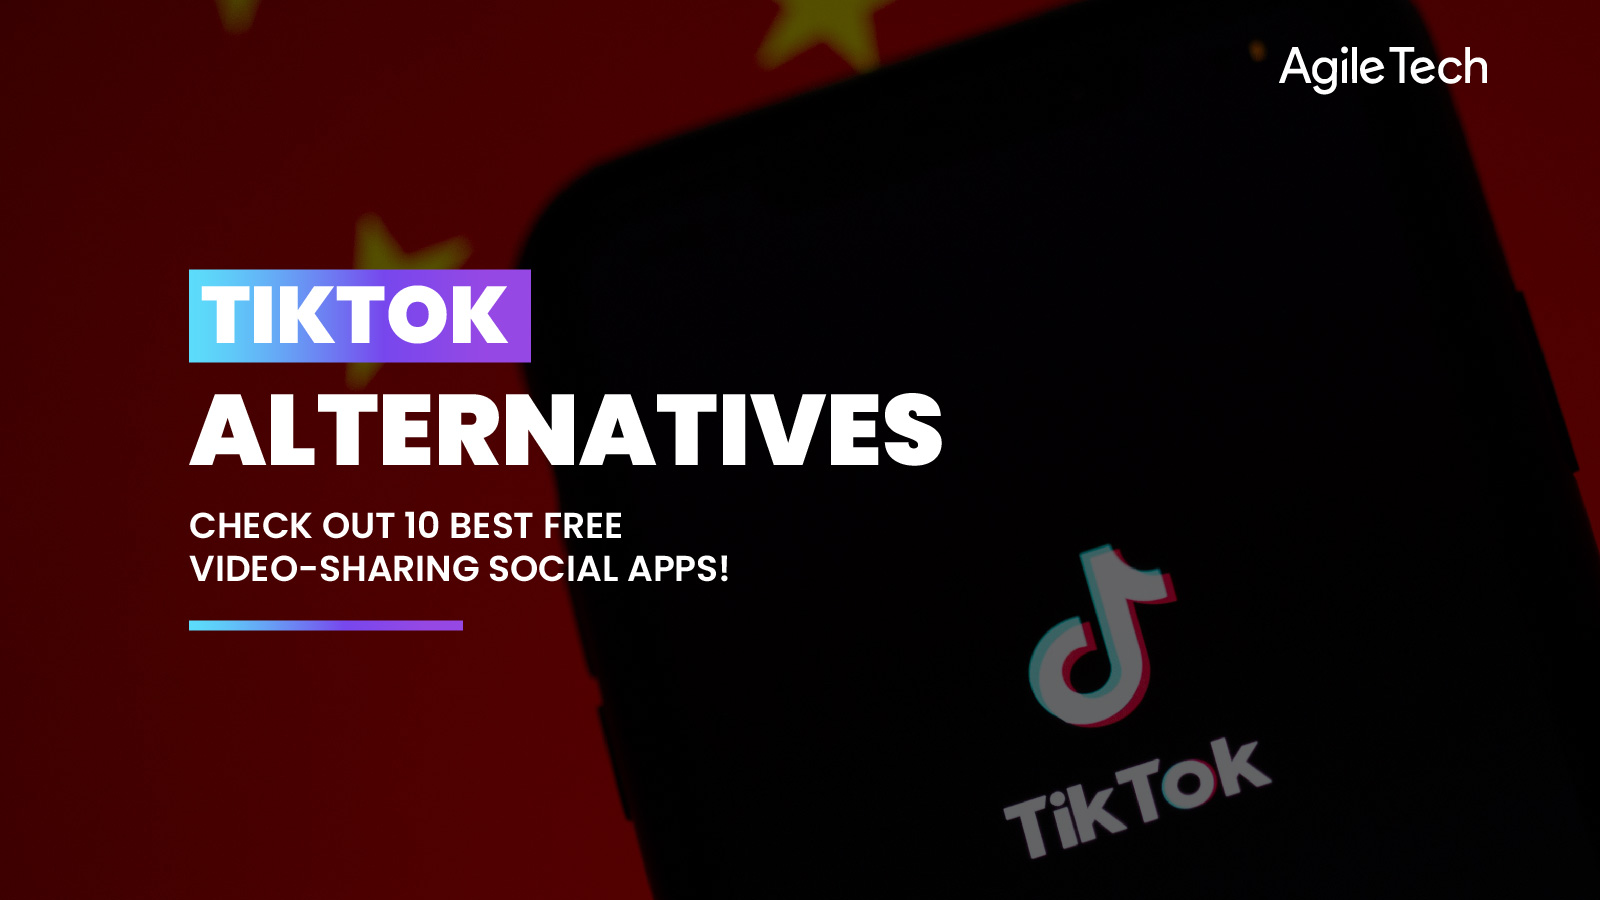 apps like tiktok, top best free video editing apps similar to tiktok, tiktok alternatives, tiktok banned in india, apps like tiktok in india, agiletech